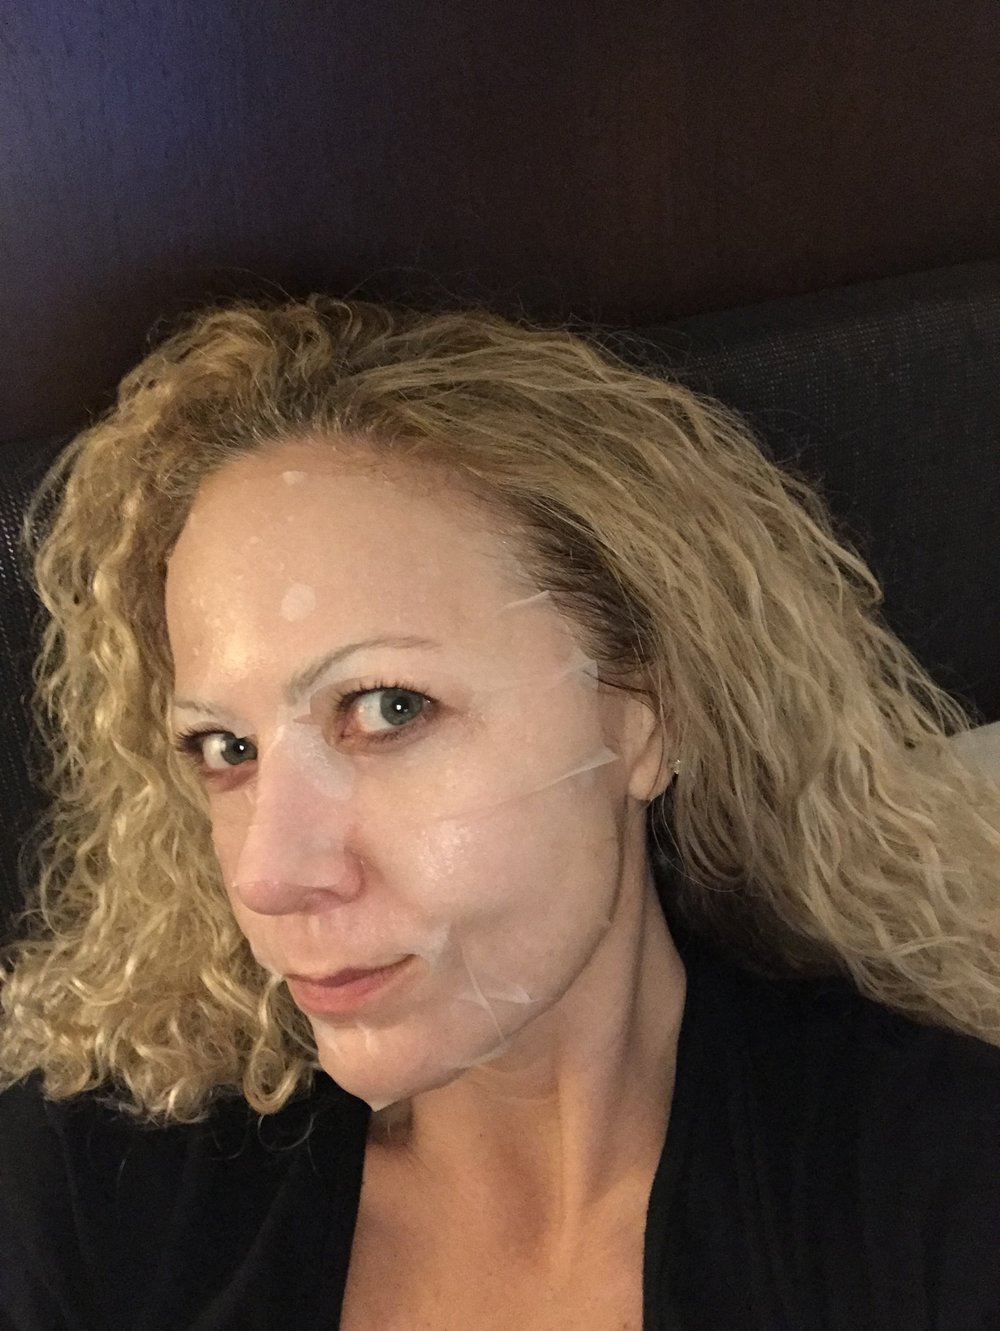 Sheet mask to moisturize. They are creepy and drippy so if you can get past that, these work well and easy to pack. When I am done with having this on my face, I will take the mask and apply to décolletage. Try it, there is always a lot of product left on these and using same products on your face and décolletage will help reduce signs of aging.